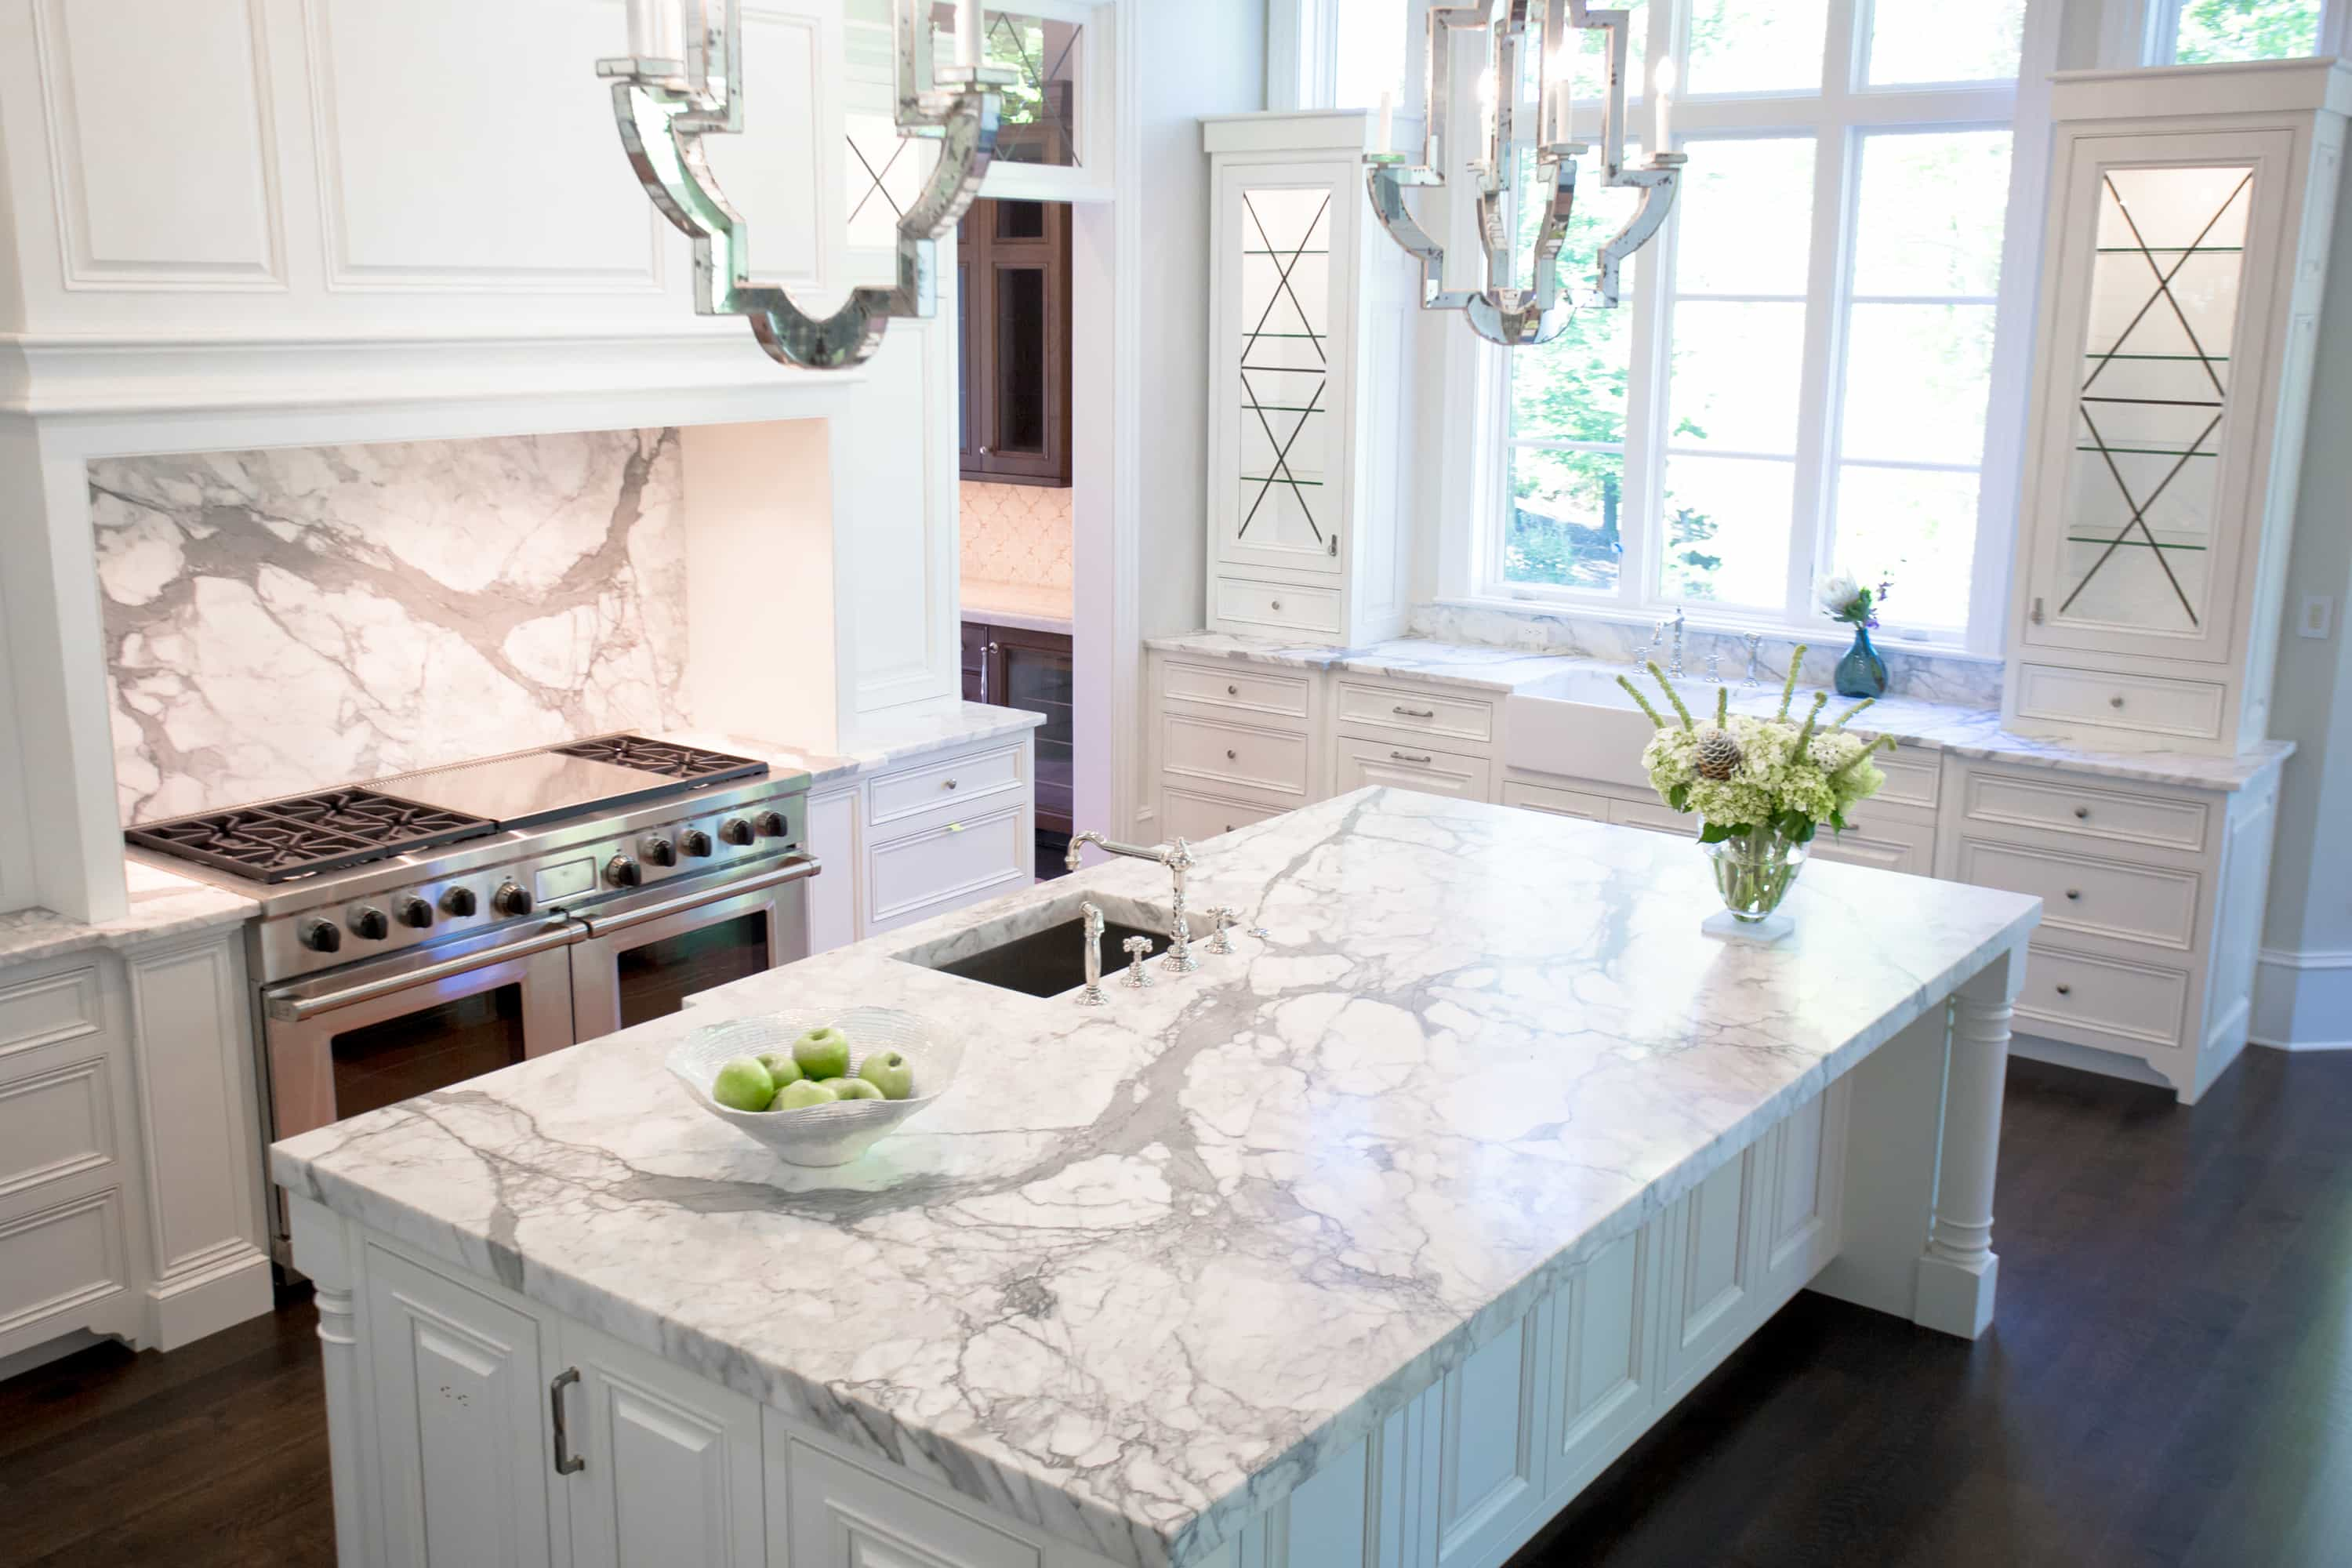 Calacatta marble from ROCKin'teriors defines the transitional look of this luxury kitchen with its rich gray veining that plays off the white cabinets. Photo credit: ROCKin'teriors